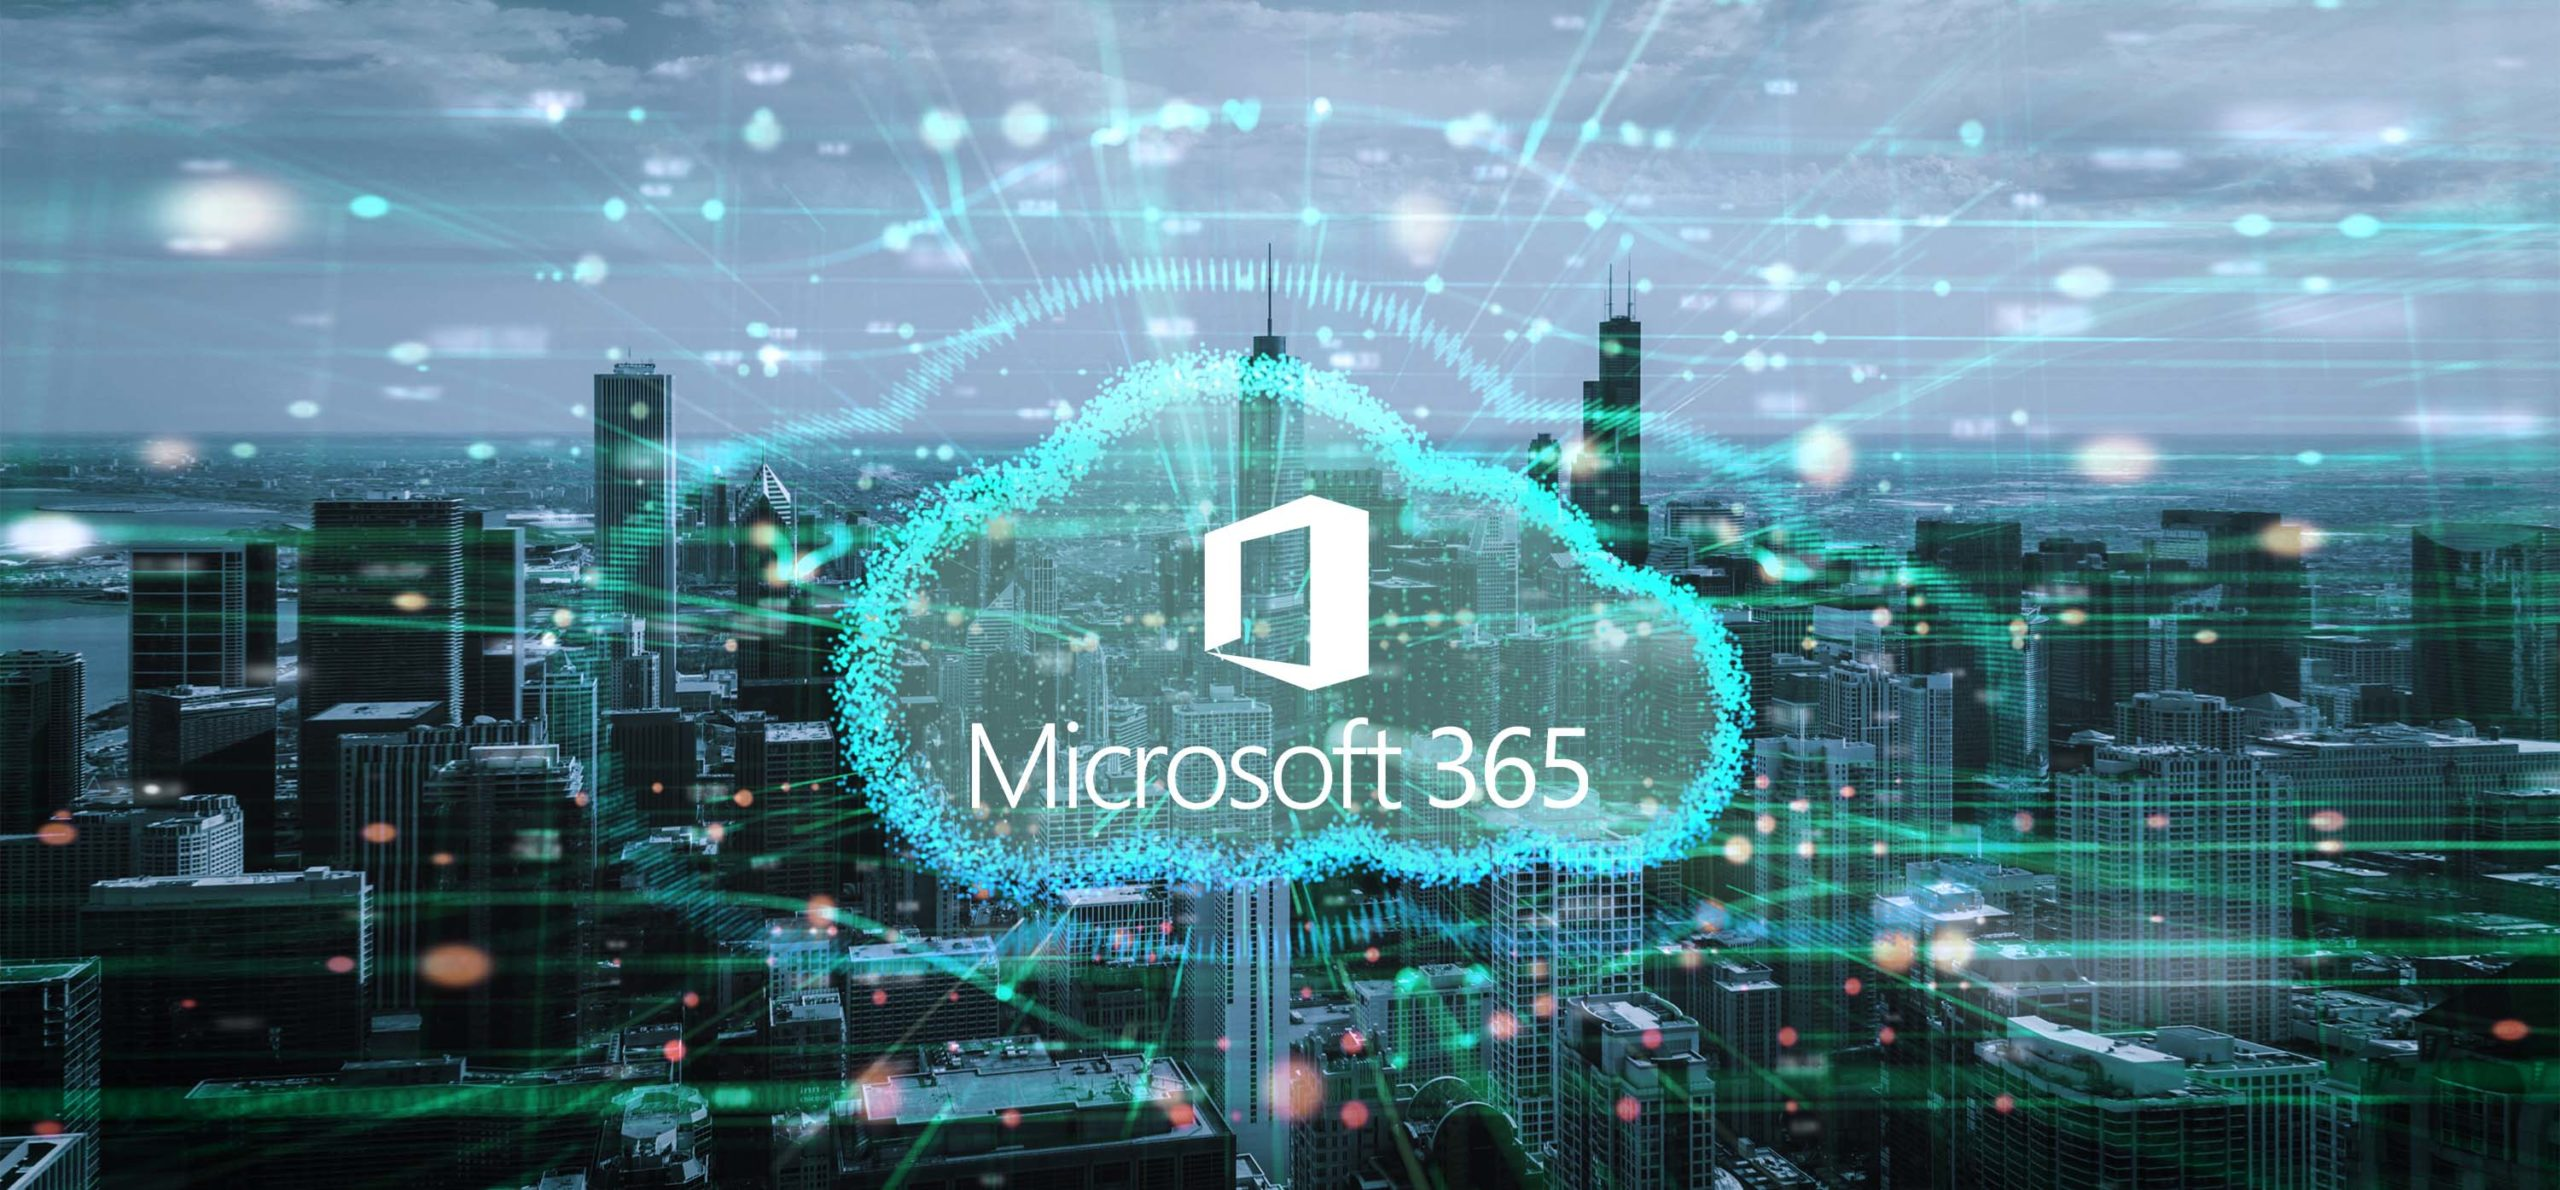 Picture City Microsoft 365 in Cloud